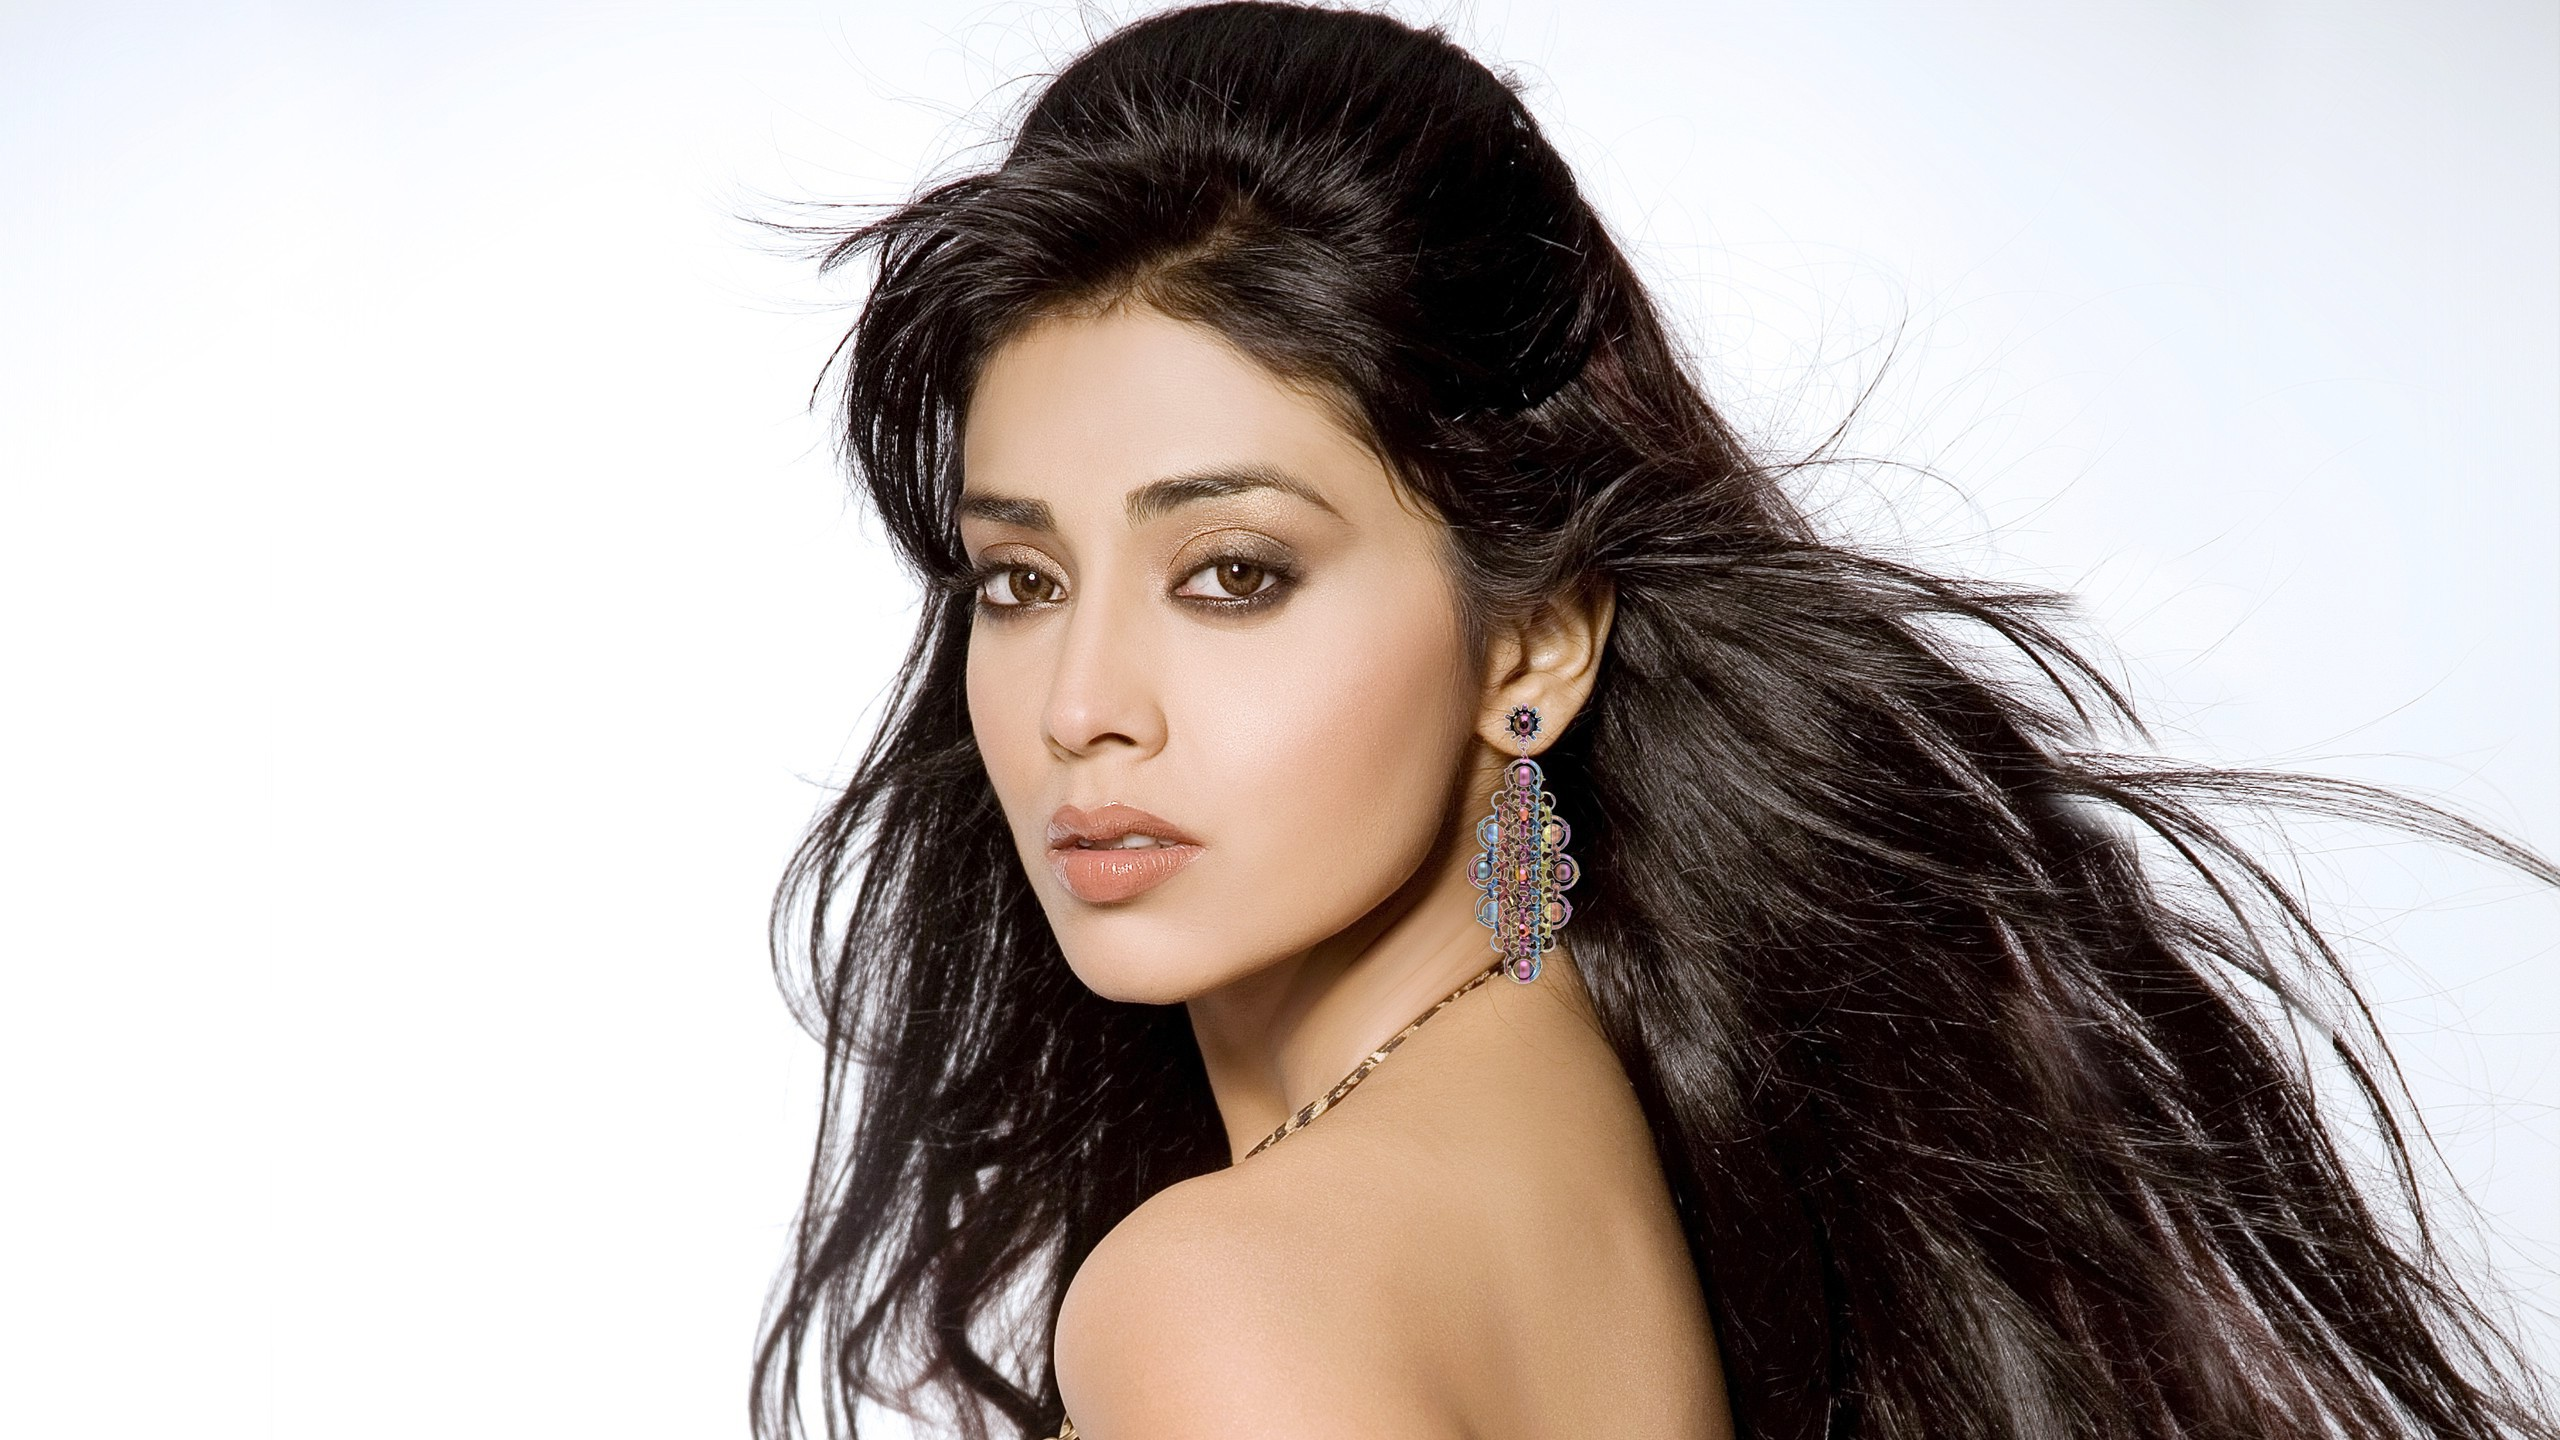 3840x2160 shriya saran 4k hd 4k wallpapers, images, backgrounds